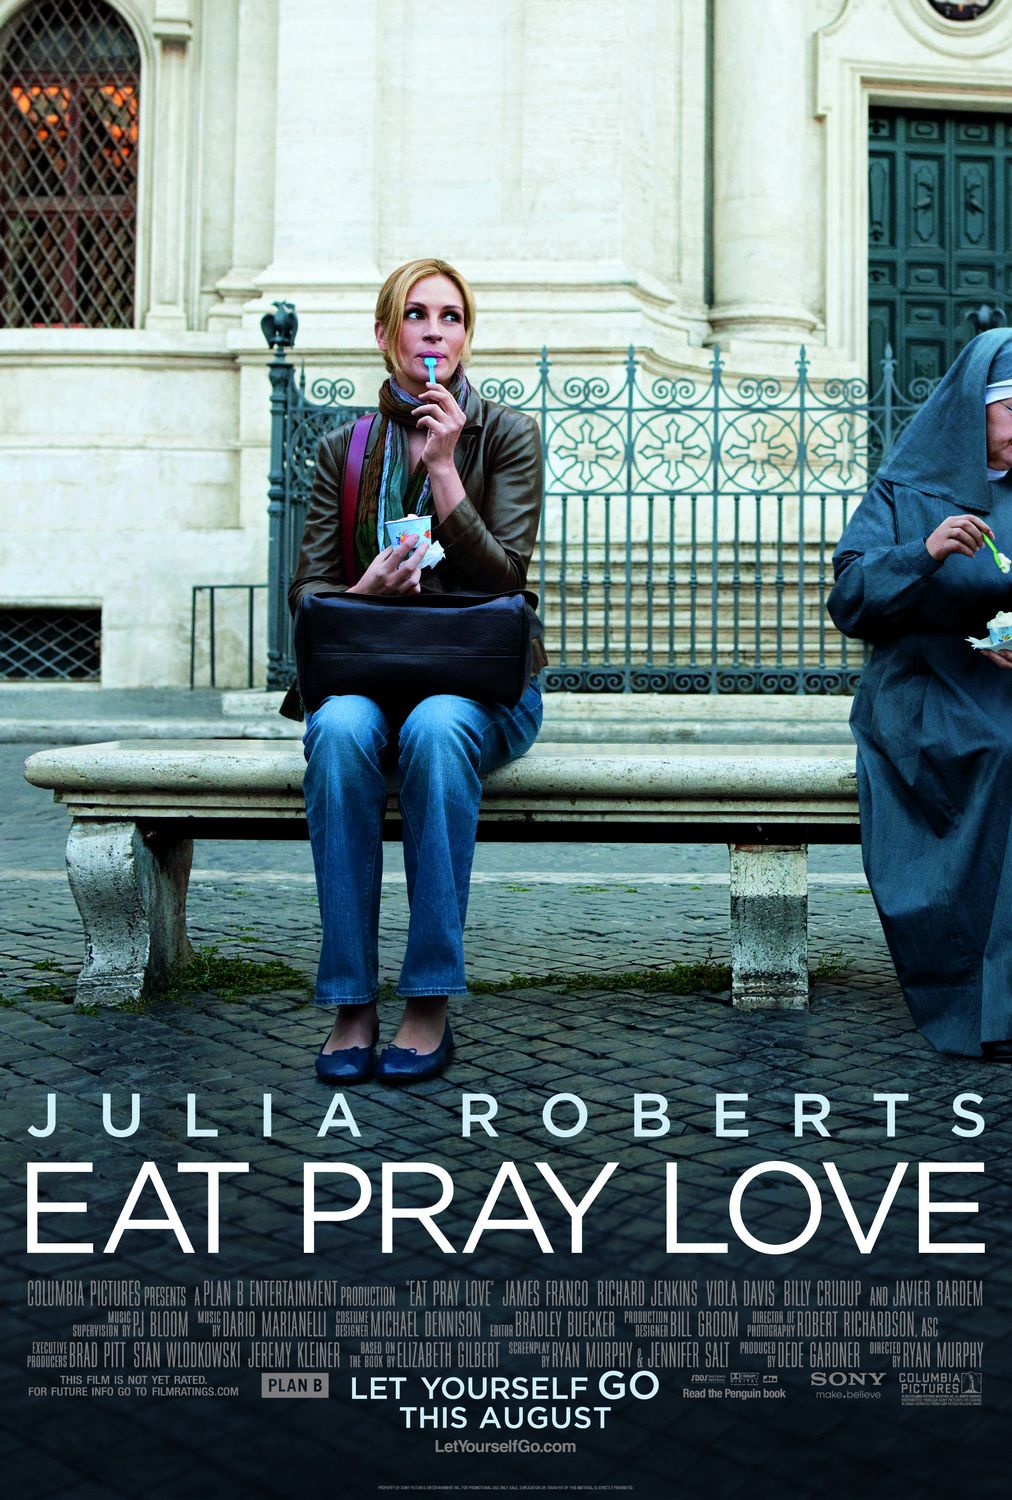 1000 things about travel 2010 eat pray love. Black Bedroom Furniture Sets. Home Design Ideas